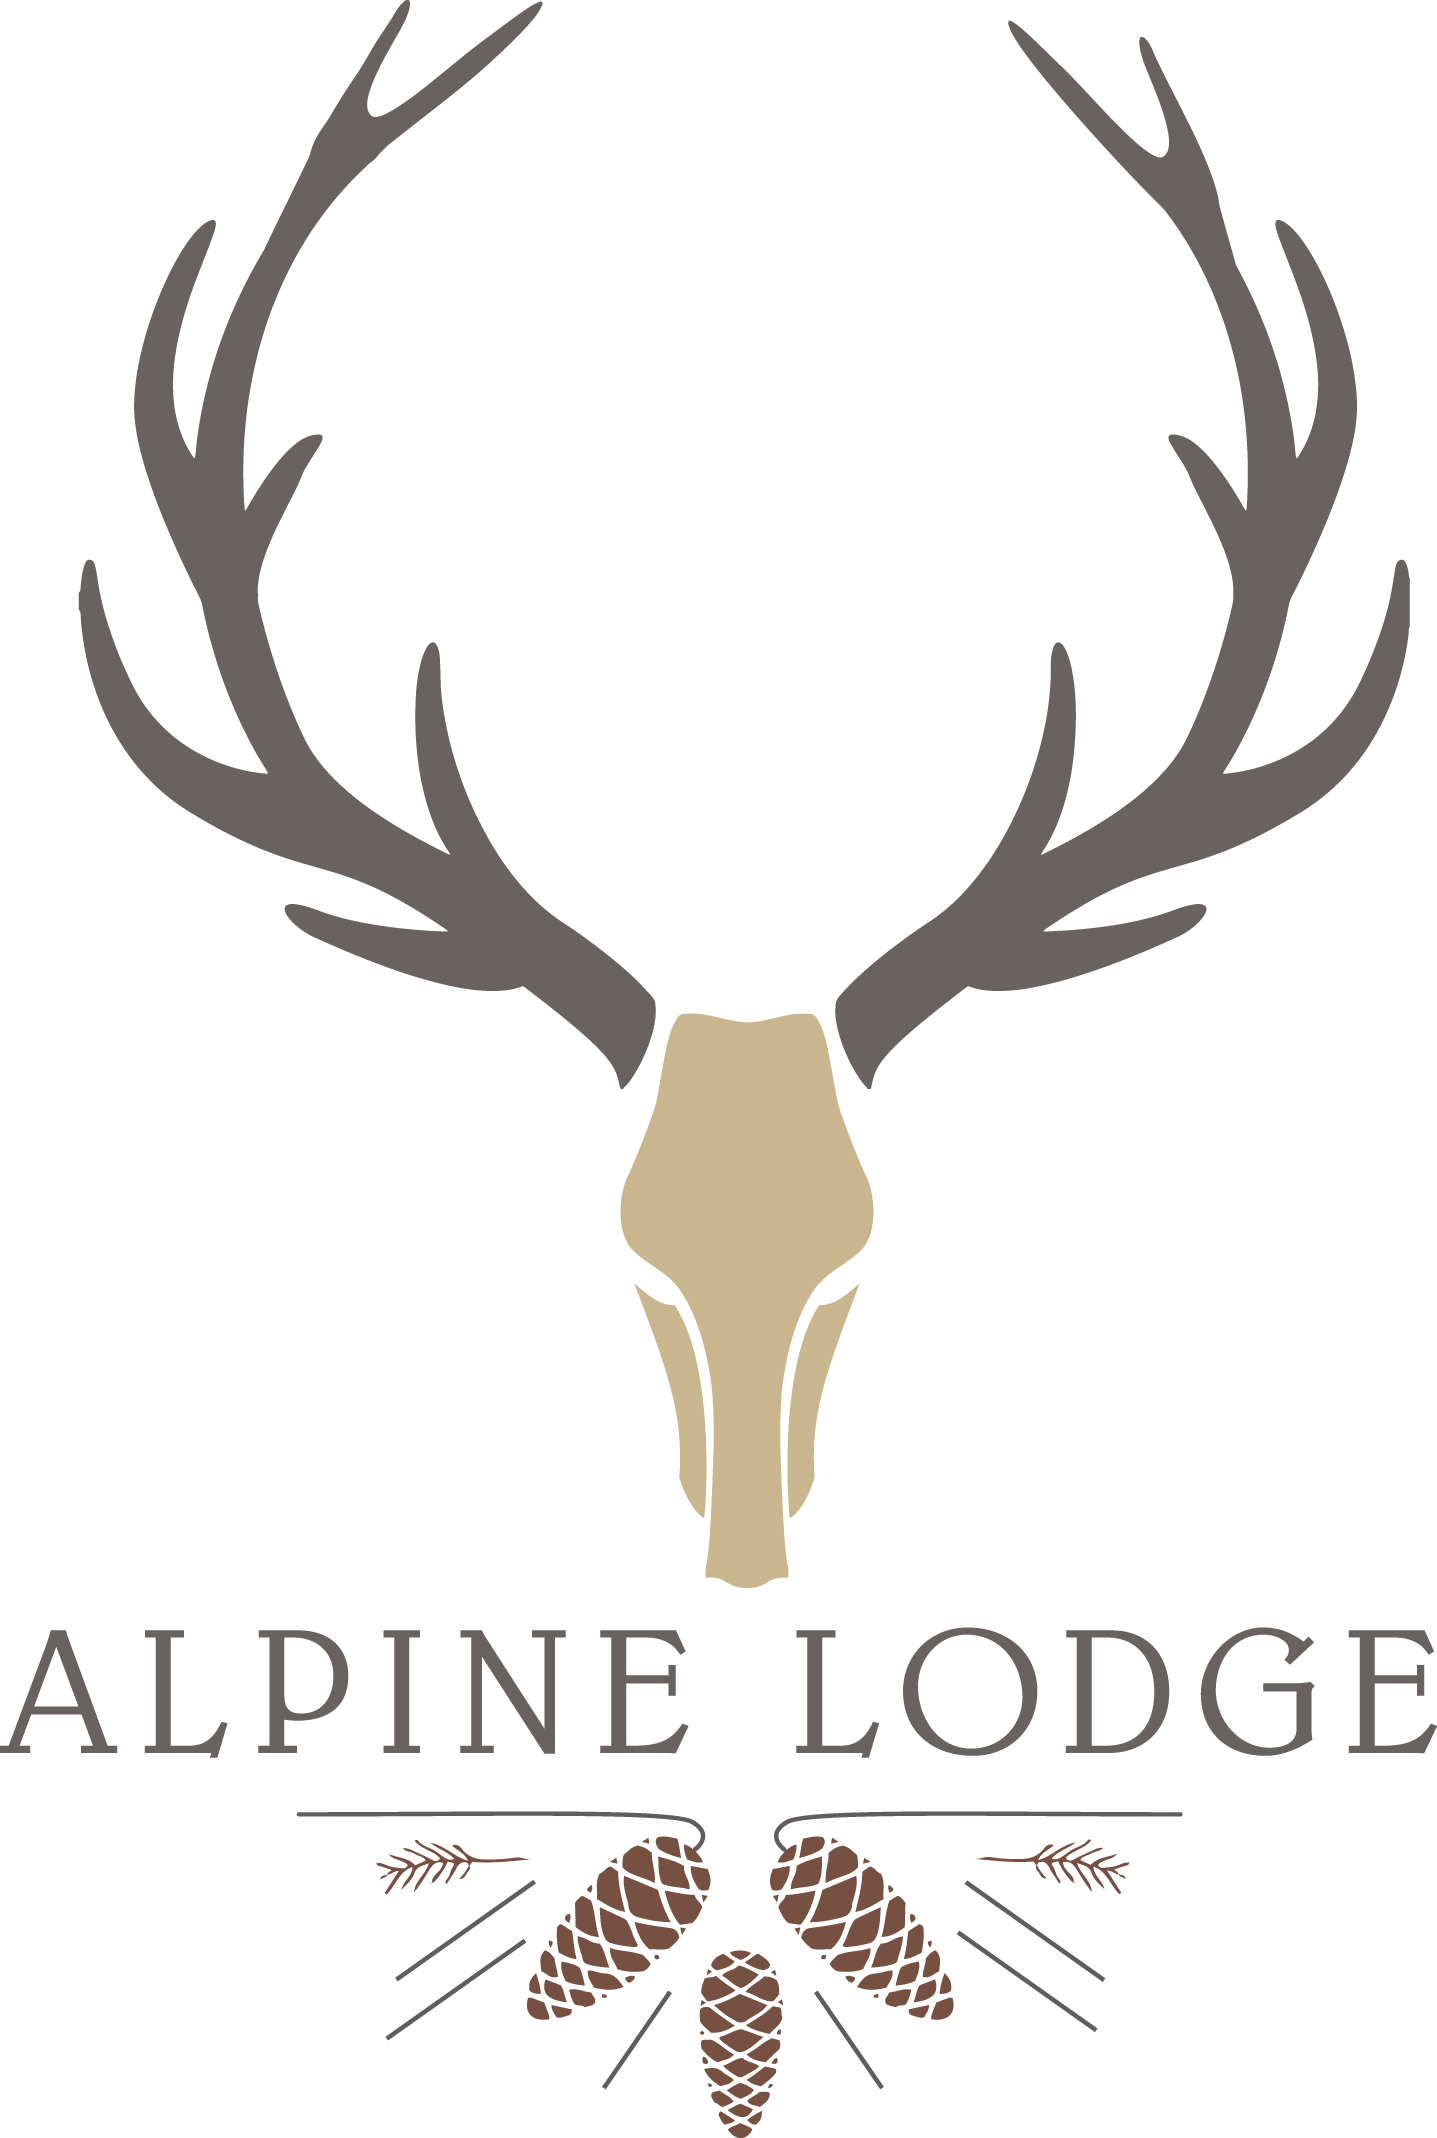 alpine lodge logo